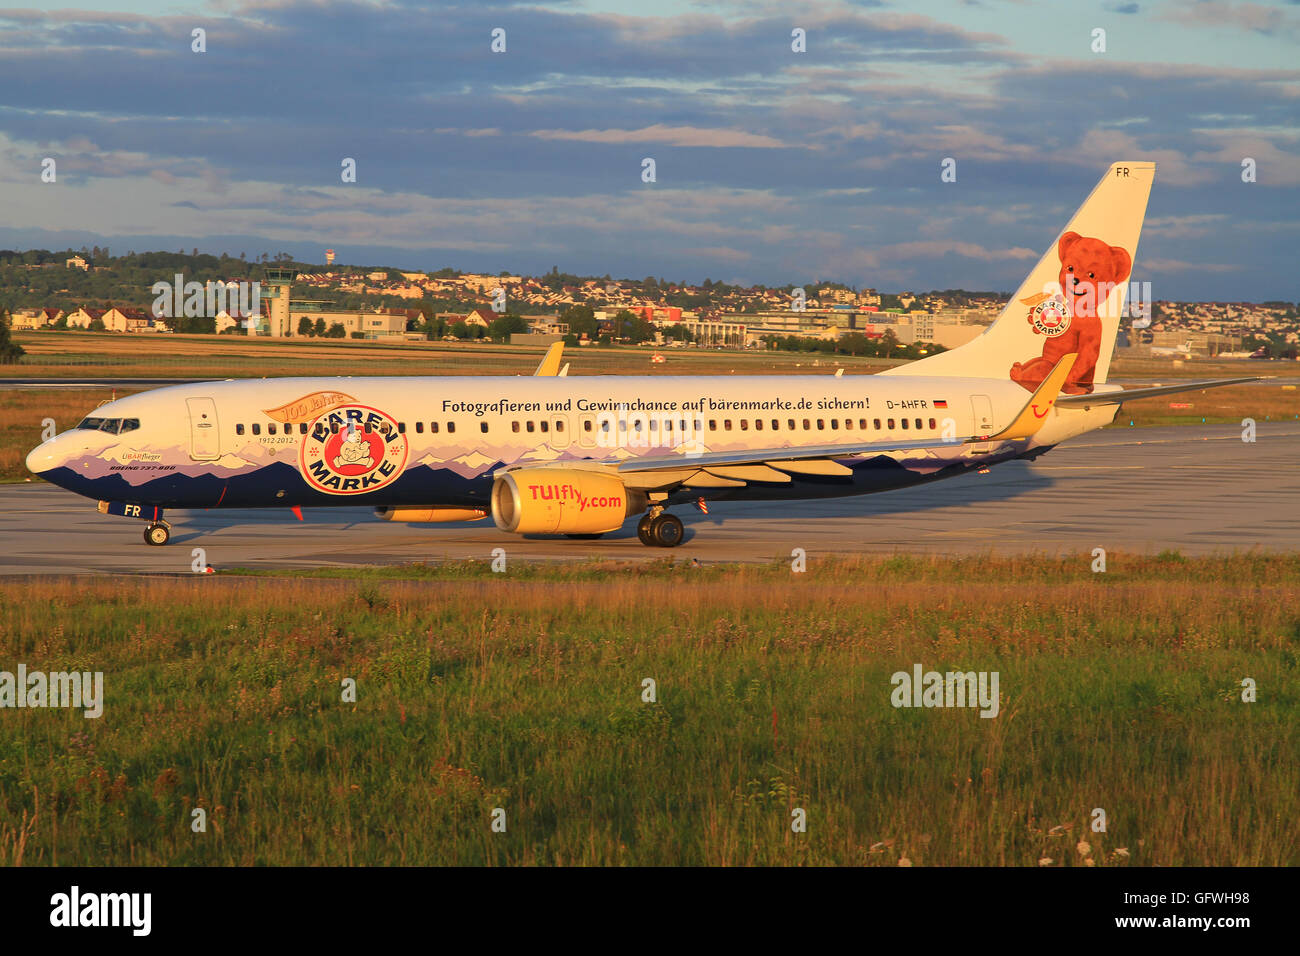 Stuttagart/Germany July 12, 2012: Boeing 737 from Tuifly with Bärem Marke livery ready to takeoff at - Stock Image